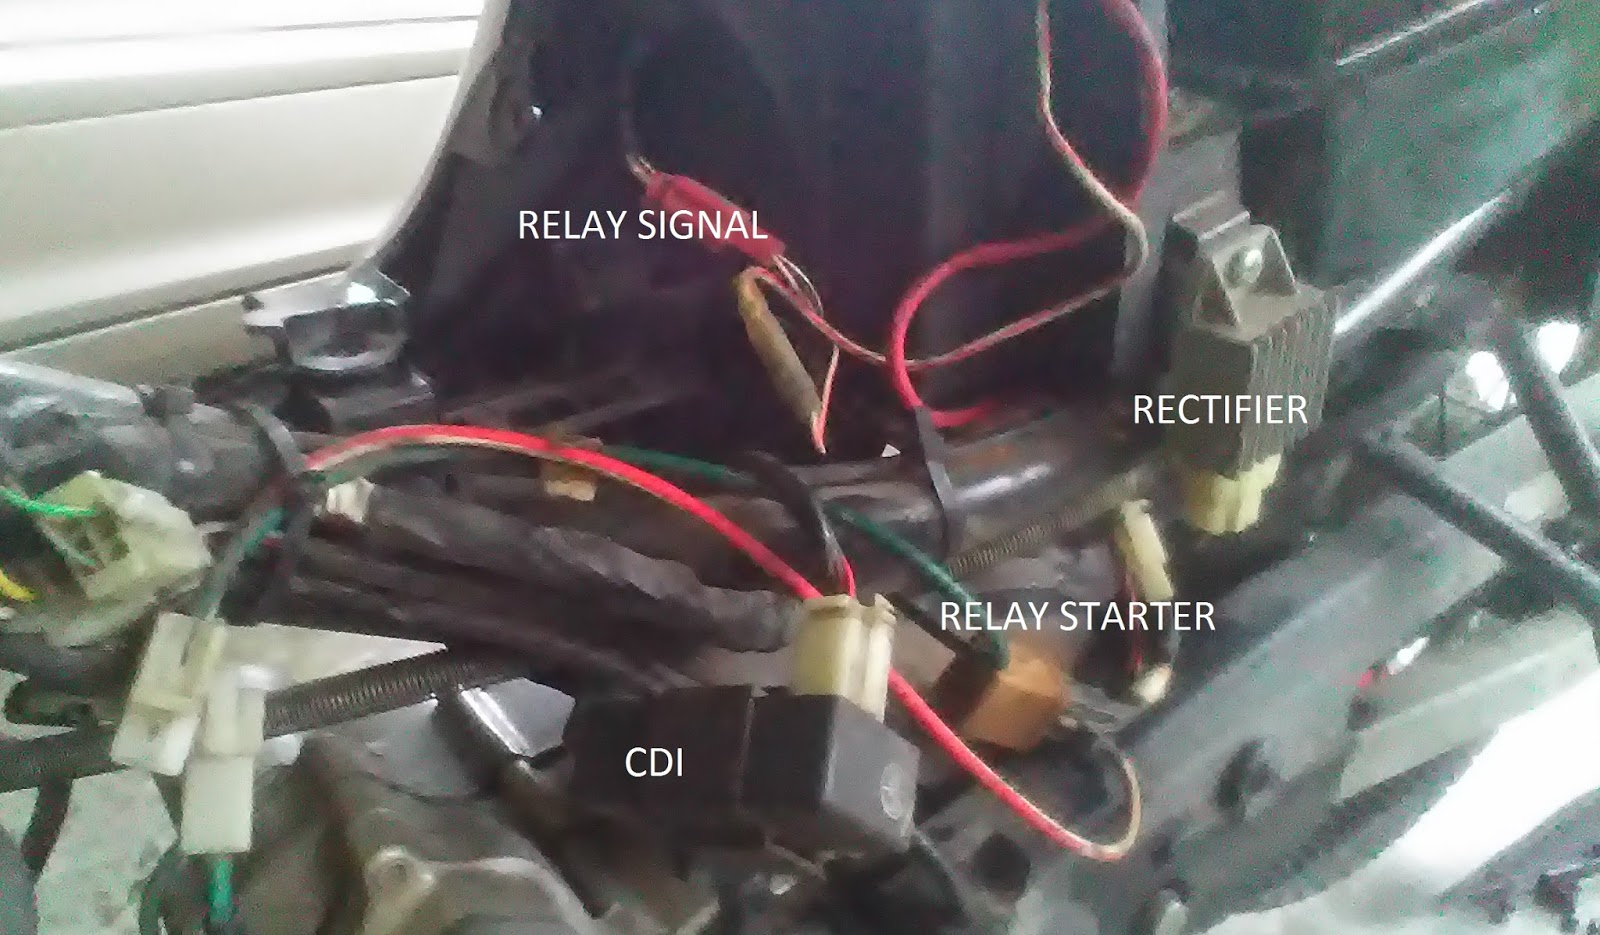 MODENAS CT100 PROBLEM: HORN, SIGNAL, AND BRAKE LIGHT NOT WORKING, WHY?